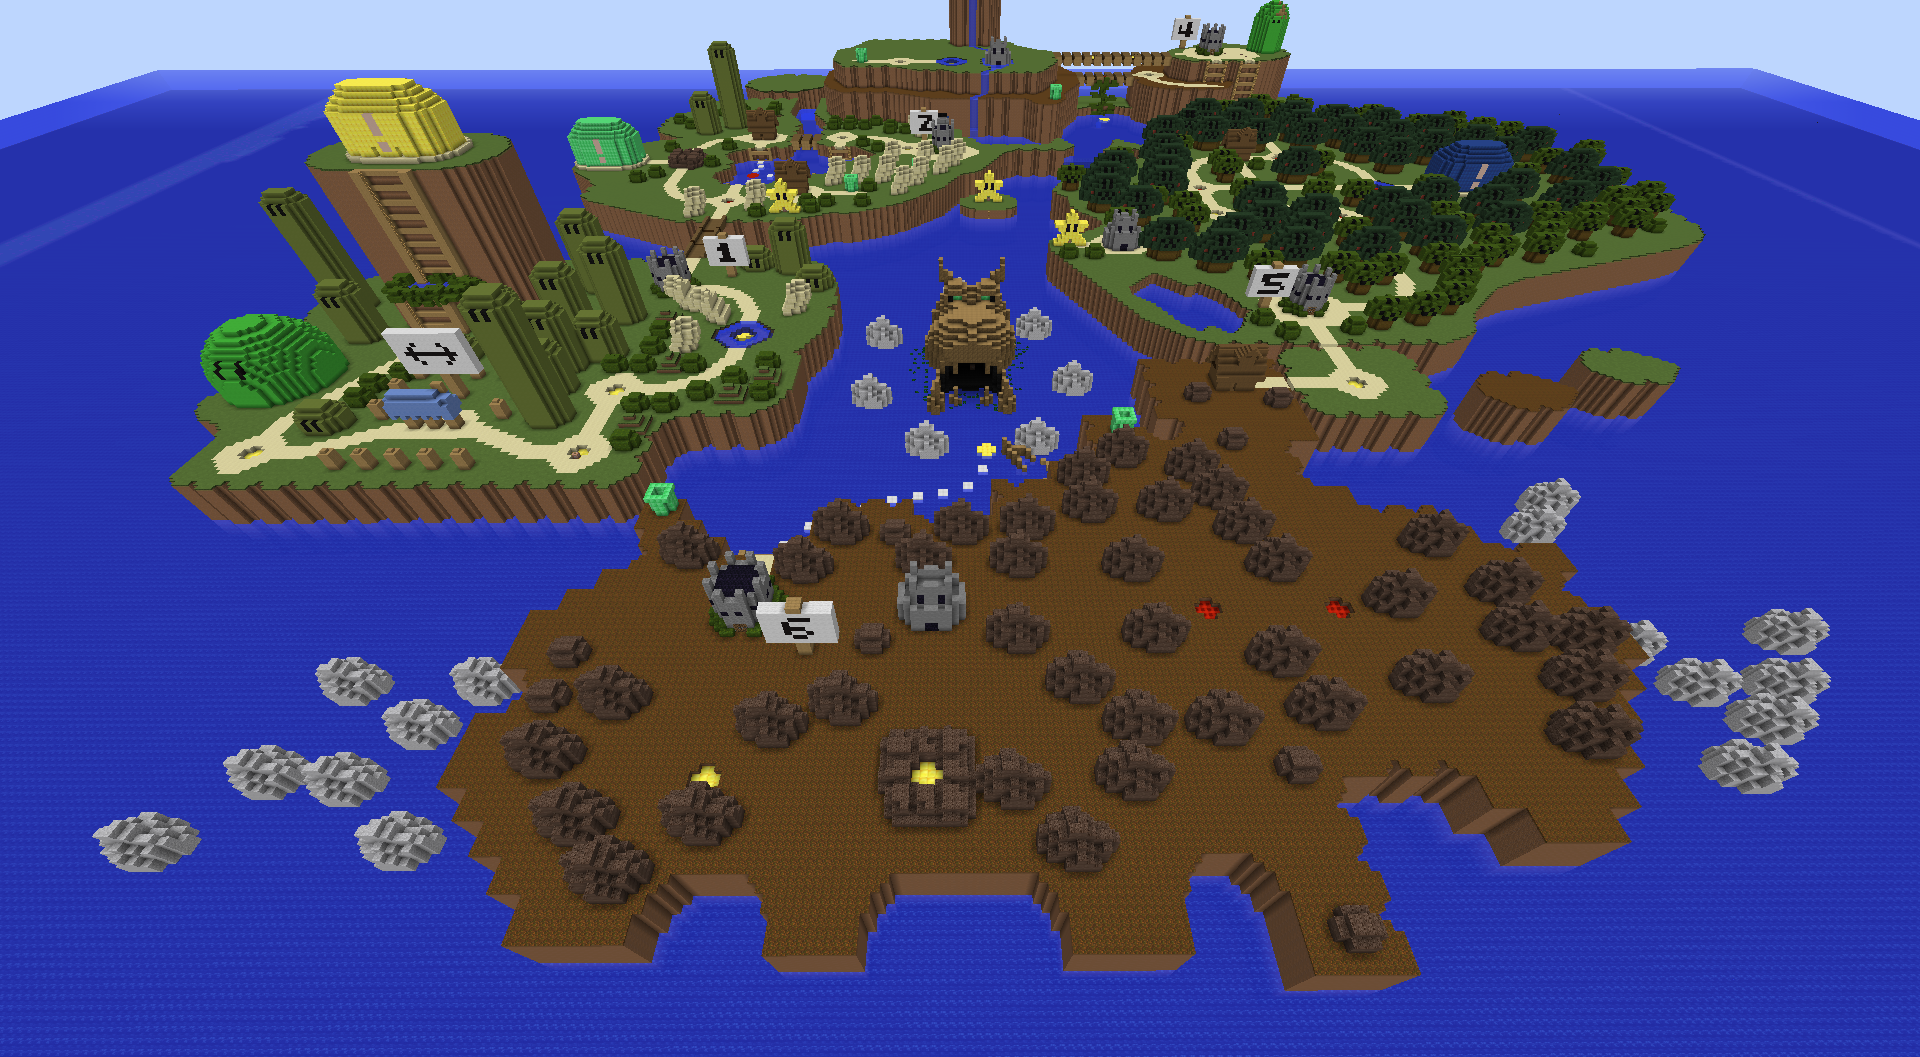 Super Mario World In Minecraft Smw Maps Mapping And